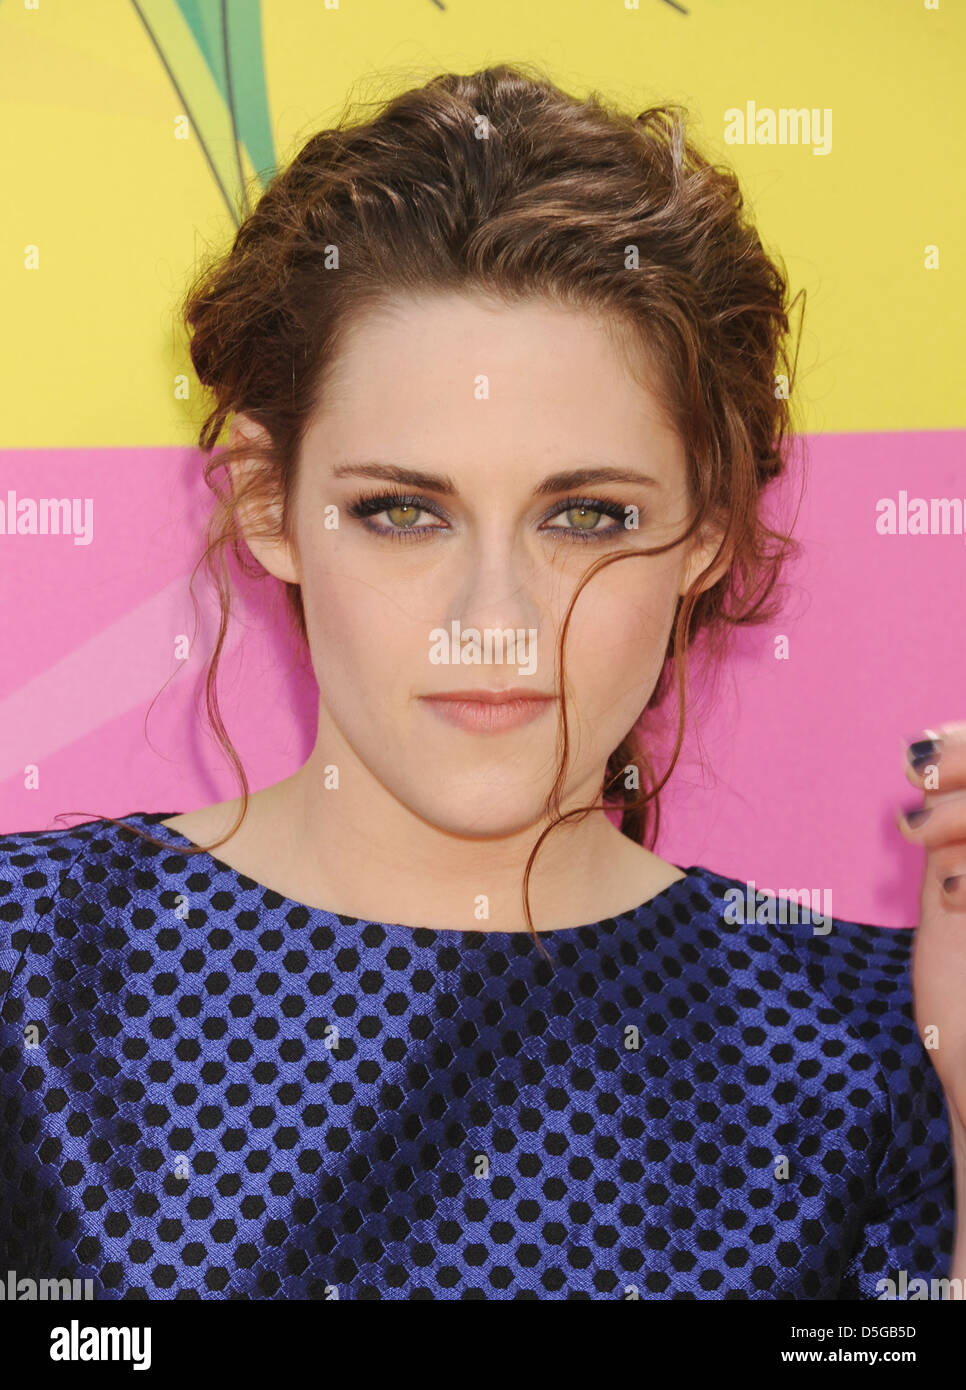 KRISTEN STEWART US film and Tv actress in March 2013. Photo Jeffrey Stock  Photo - Alamy